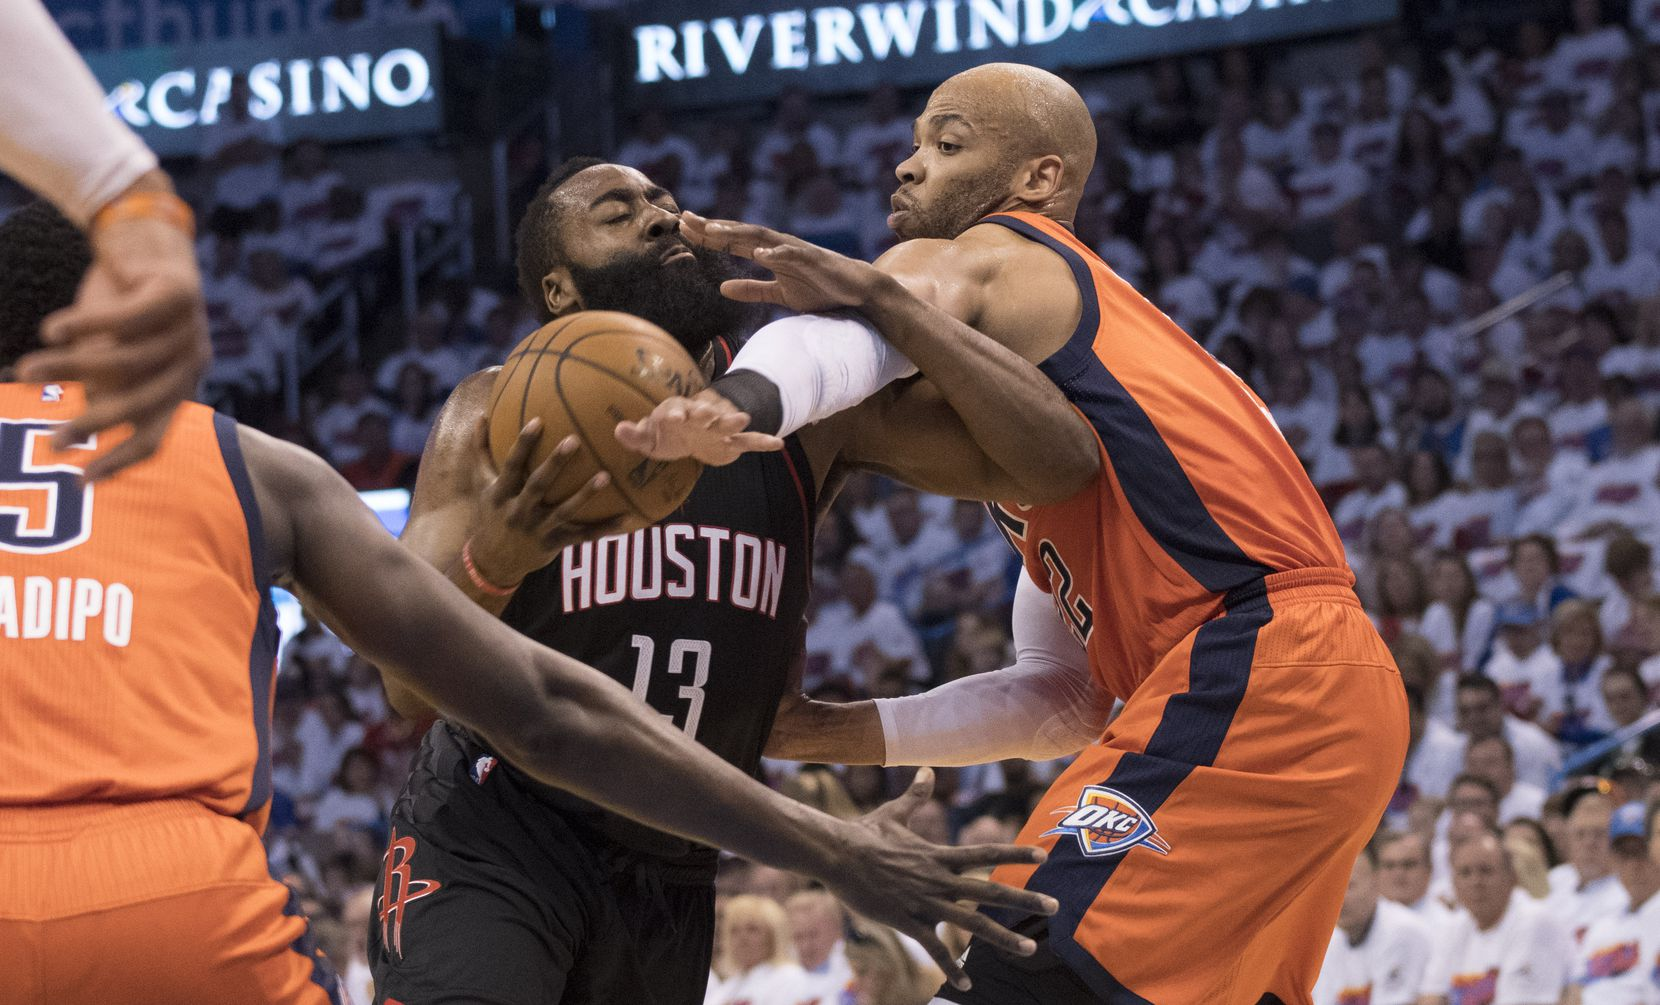 OKLAHOMA CITY, OK - APRIL 23: James Harden #13 of the Houston Rockets and Taj Gibson #22 of the Oklahoma City Thunder battle for the ball  during the first half of Game Four in the 2017 NBA Playoffs Western Conference Quarterfinals on April 23, 2017 in Oklahoma City, Oklahoma. Oklahoma City defeated Houston 115-113   NOTE TO USER: User expressly acknowledges and agrees that, by downloading and or using this photograph, User is consenting to the terms and conditions of the Getty Images License Agreement. (Photo by J Pat Carter/Getty Images)